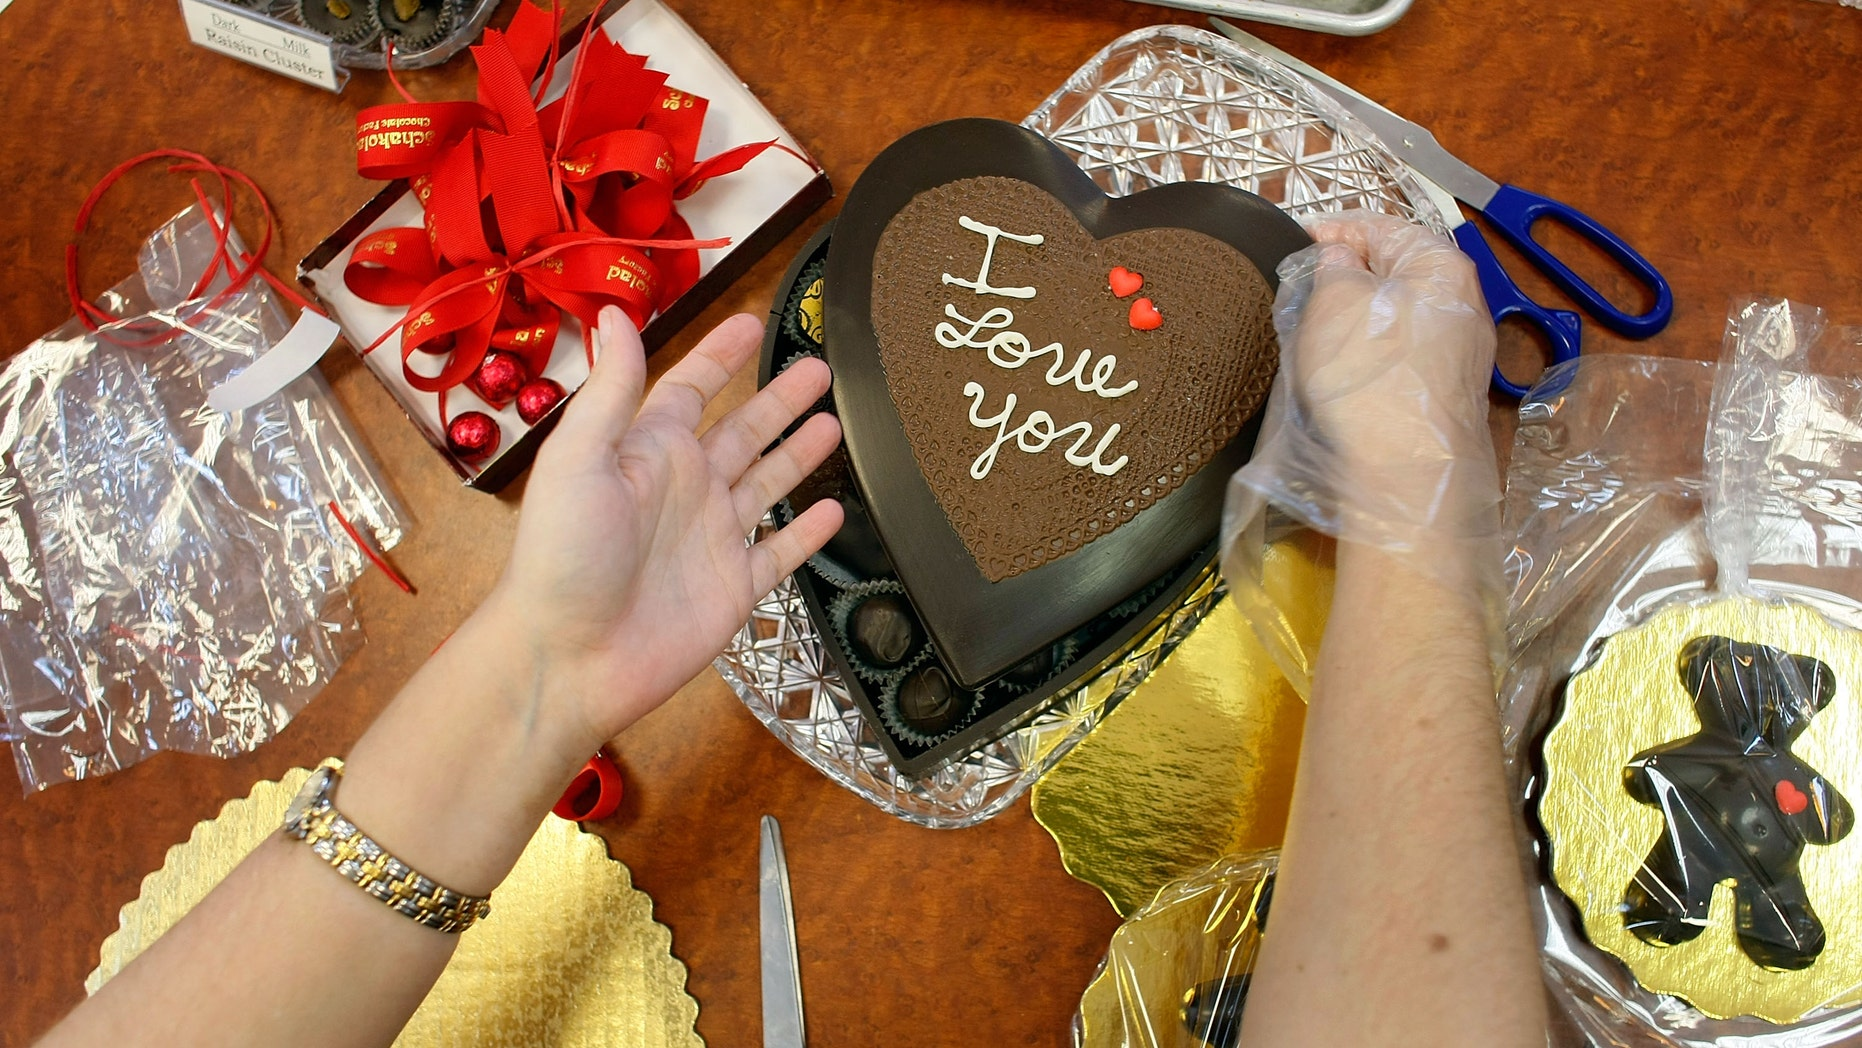 Chocolate gets eaten, flowers wither and cards are tossed into the bin, but a loving memory lasts a lifetime. So if you are on a budget, or feel that Valentine's Day is just too commercialized, here are some thoughtful gift ideas that cost very little but will be priceless to your loved one.